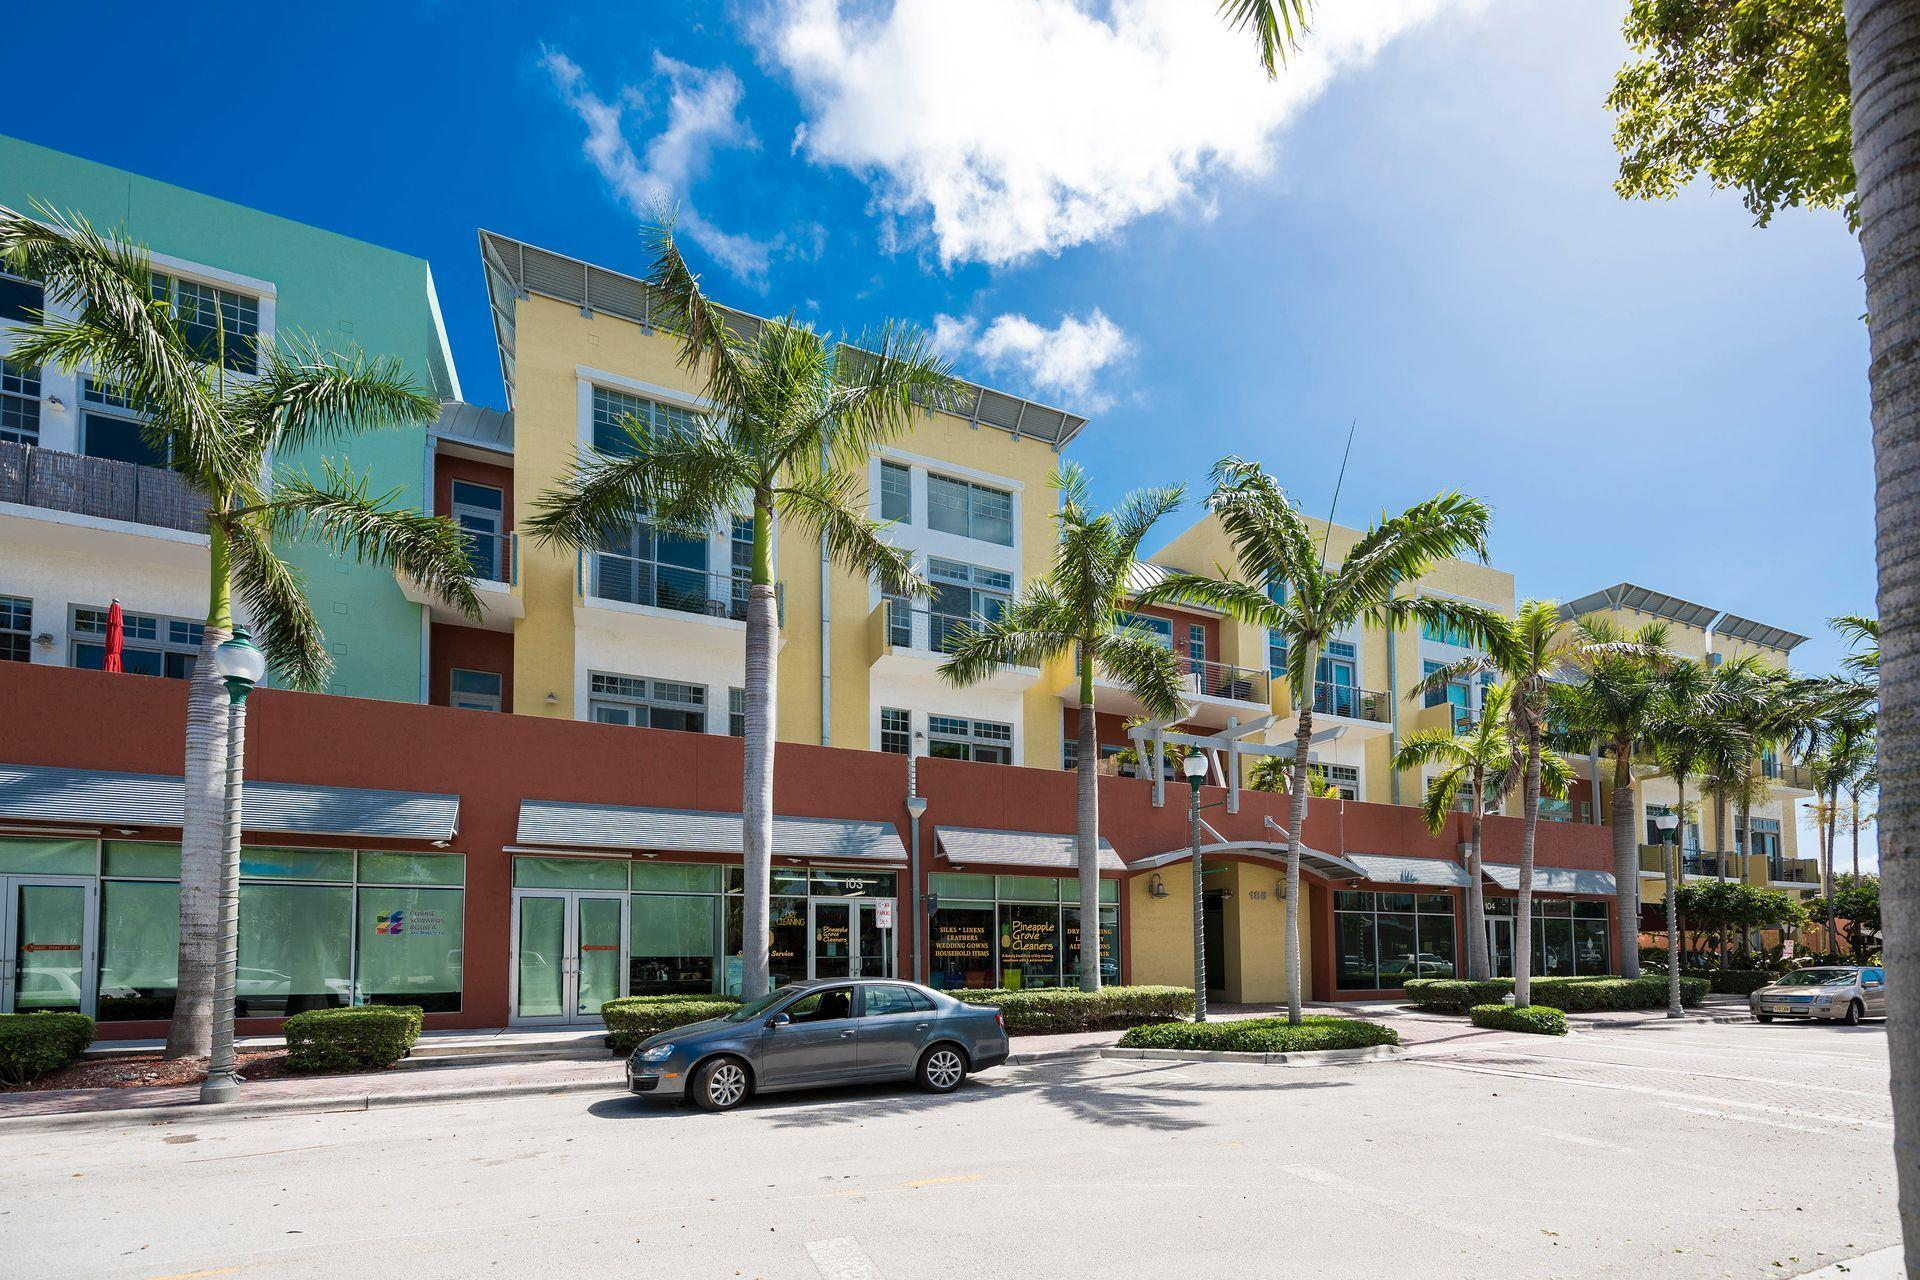 185 4th Avenue 312 (Pthse), Delray Beach, Florida 33483, 2 Bedrooms Bedrooms, ,2.1 BathroomsBathrooms,A,Condominium,4th,RX-10409091